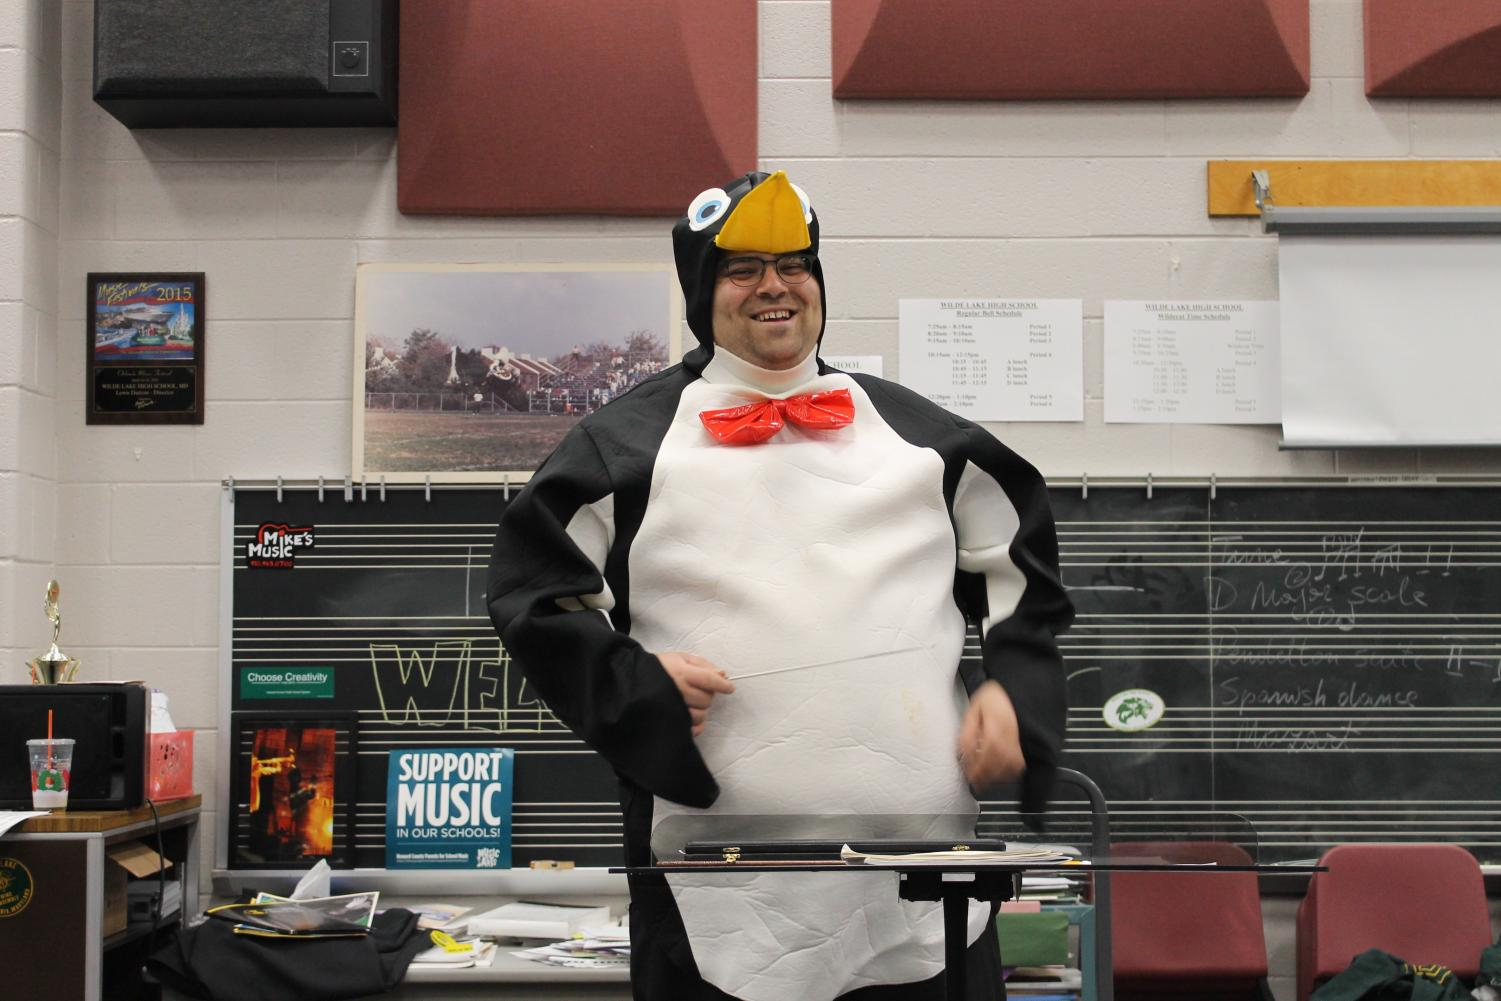 Mr. Green conducting in his penguin costume.